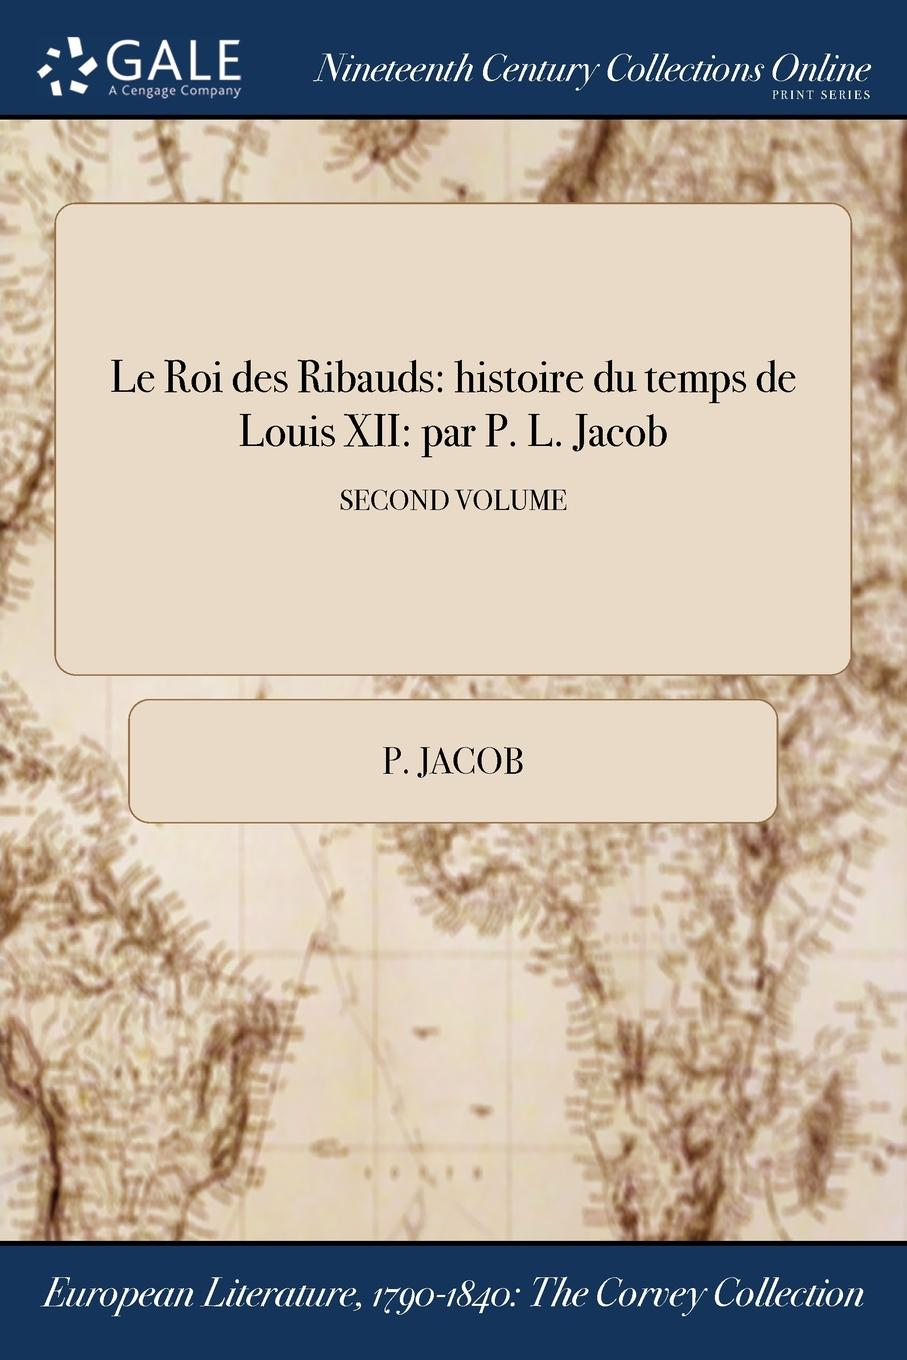 P. Jacob Le Roi des Ribauds. histoire du temps de Louis XII: par P. L. Jacob; SECOND VOLUME